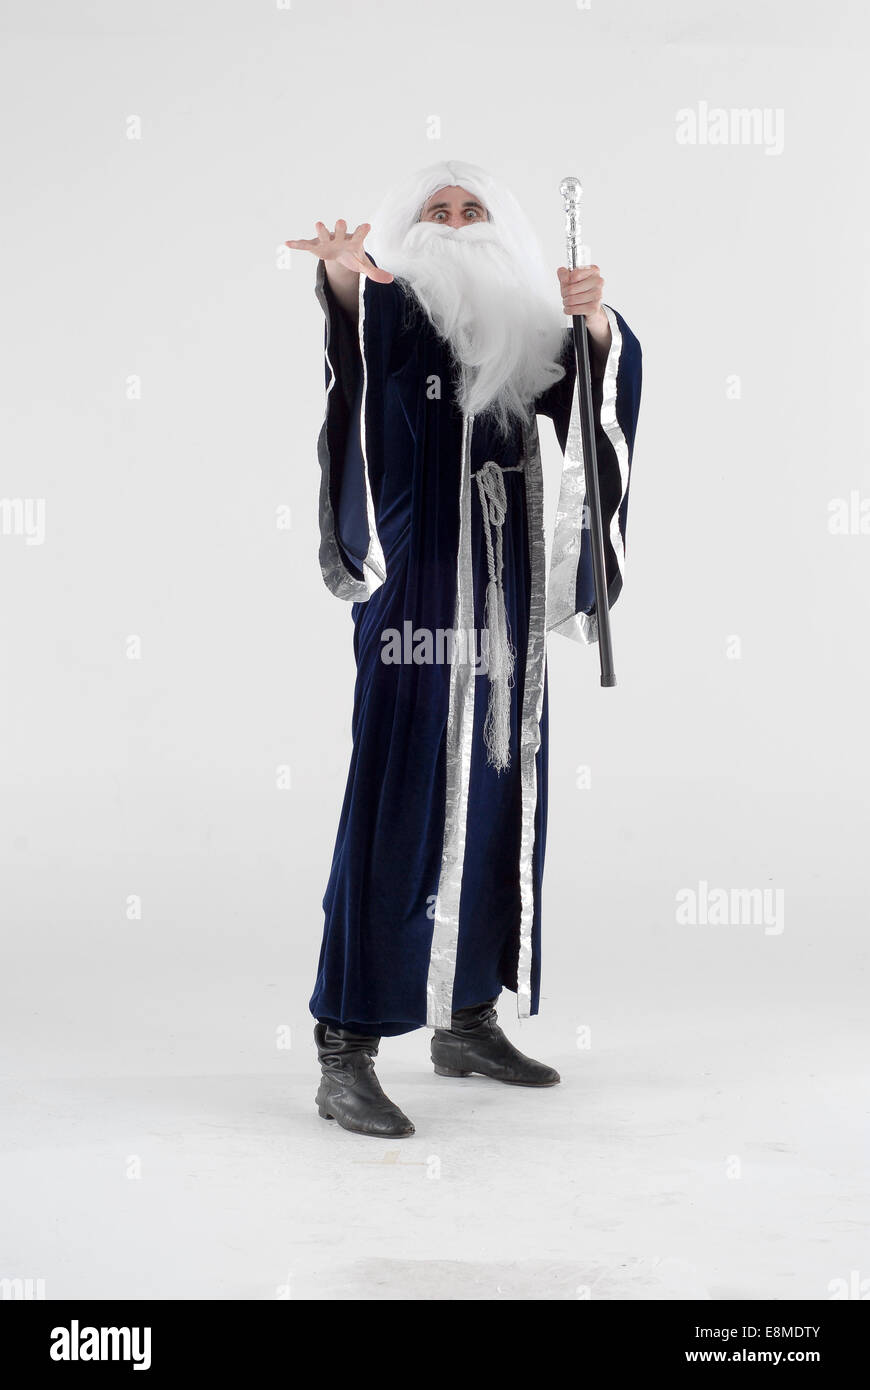 man in fancy dress comedy costume as a moses god like figure or